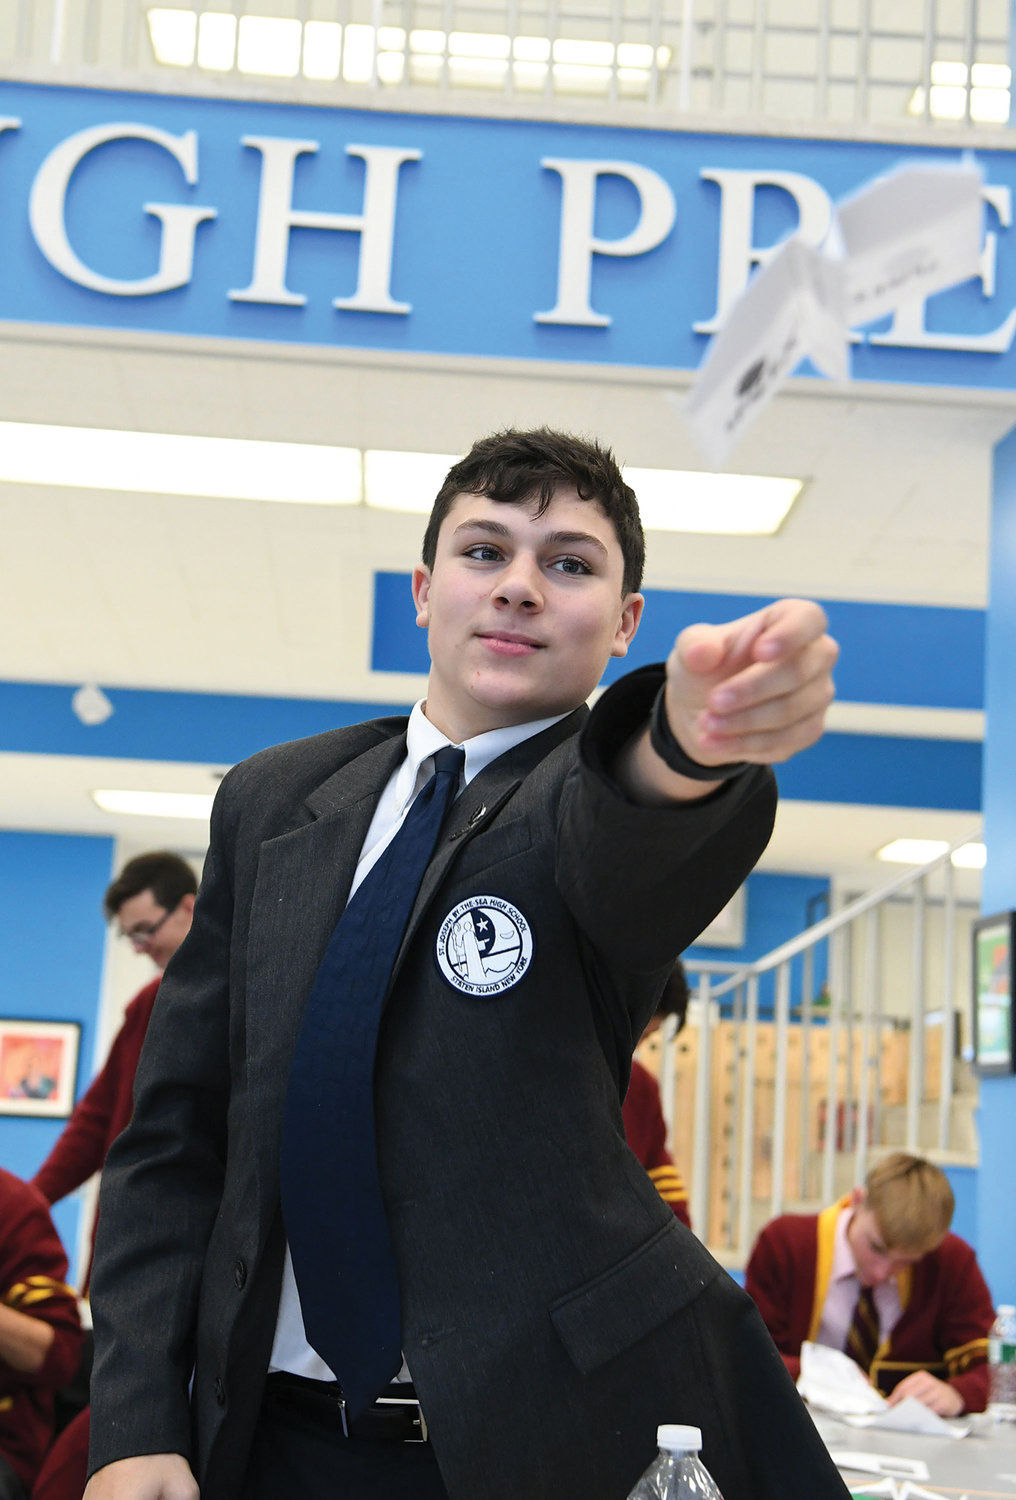 Frank Falcone, a student at St. Joseph by-the-Sea, sends his paper airplane soaring on a test flight.